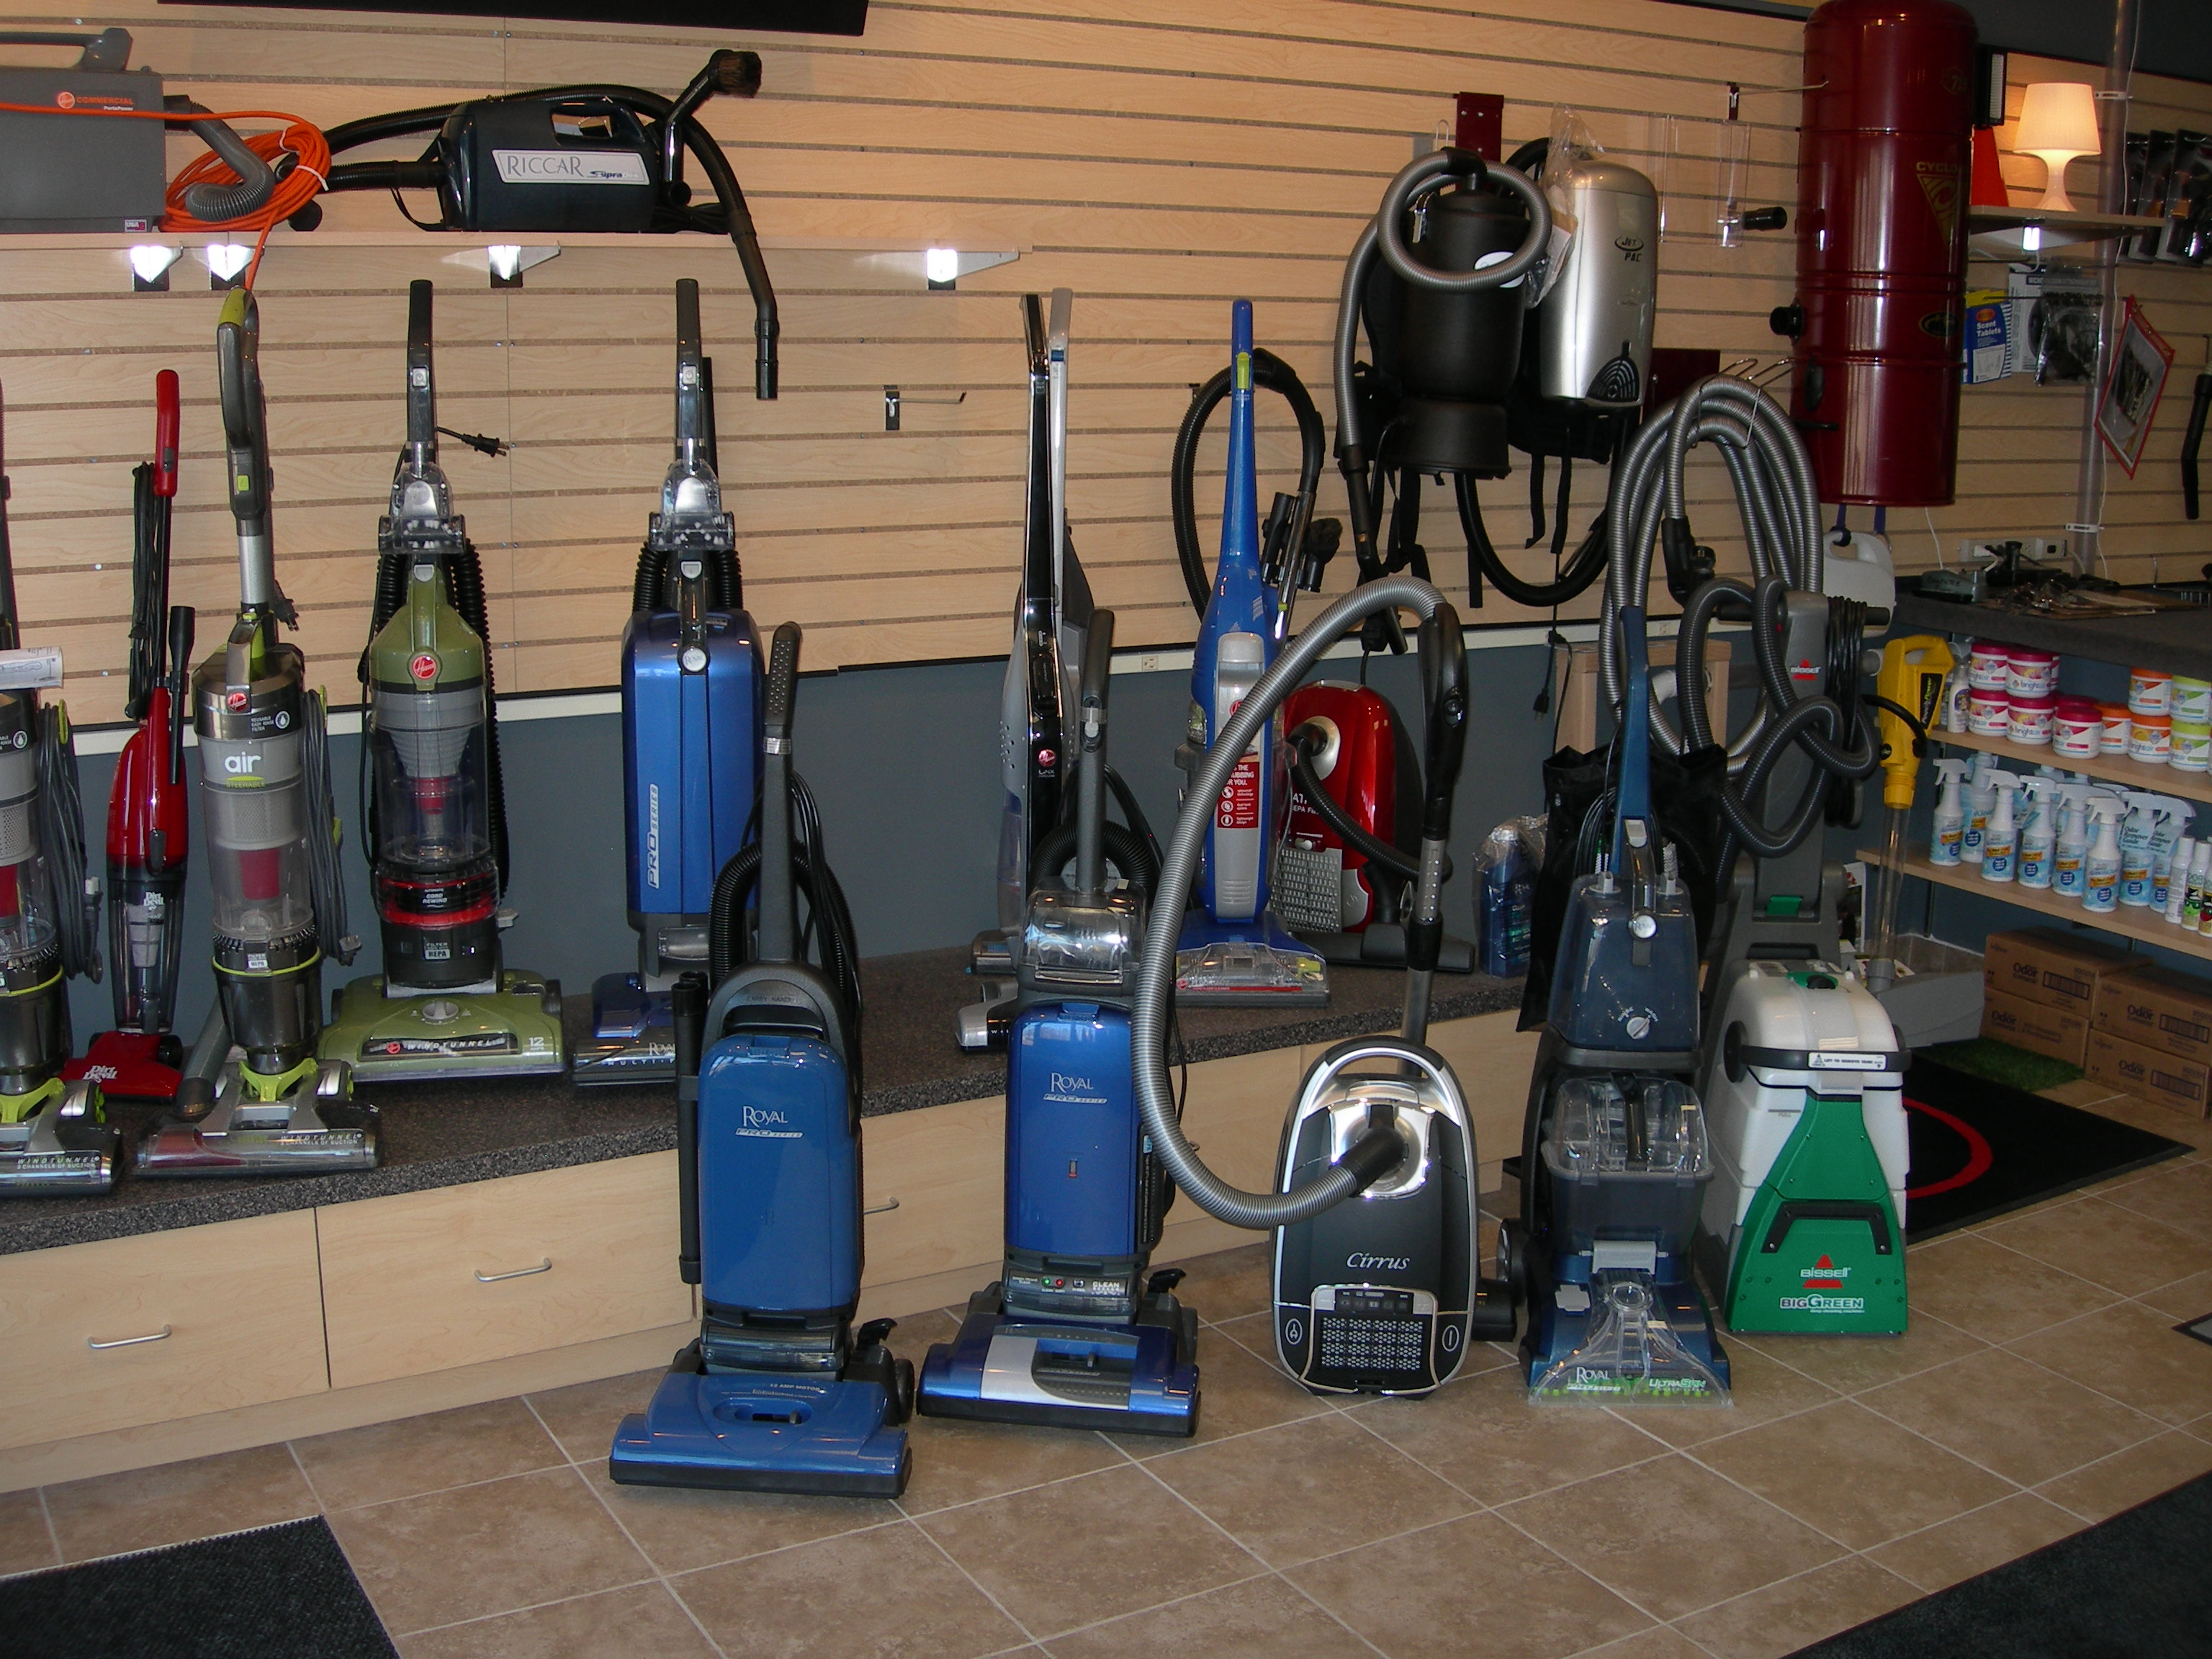 A-1 Vacuum Cleaner Company image 3